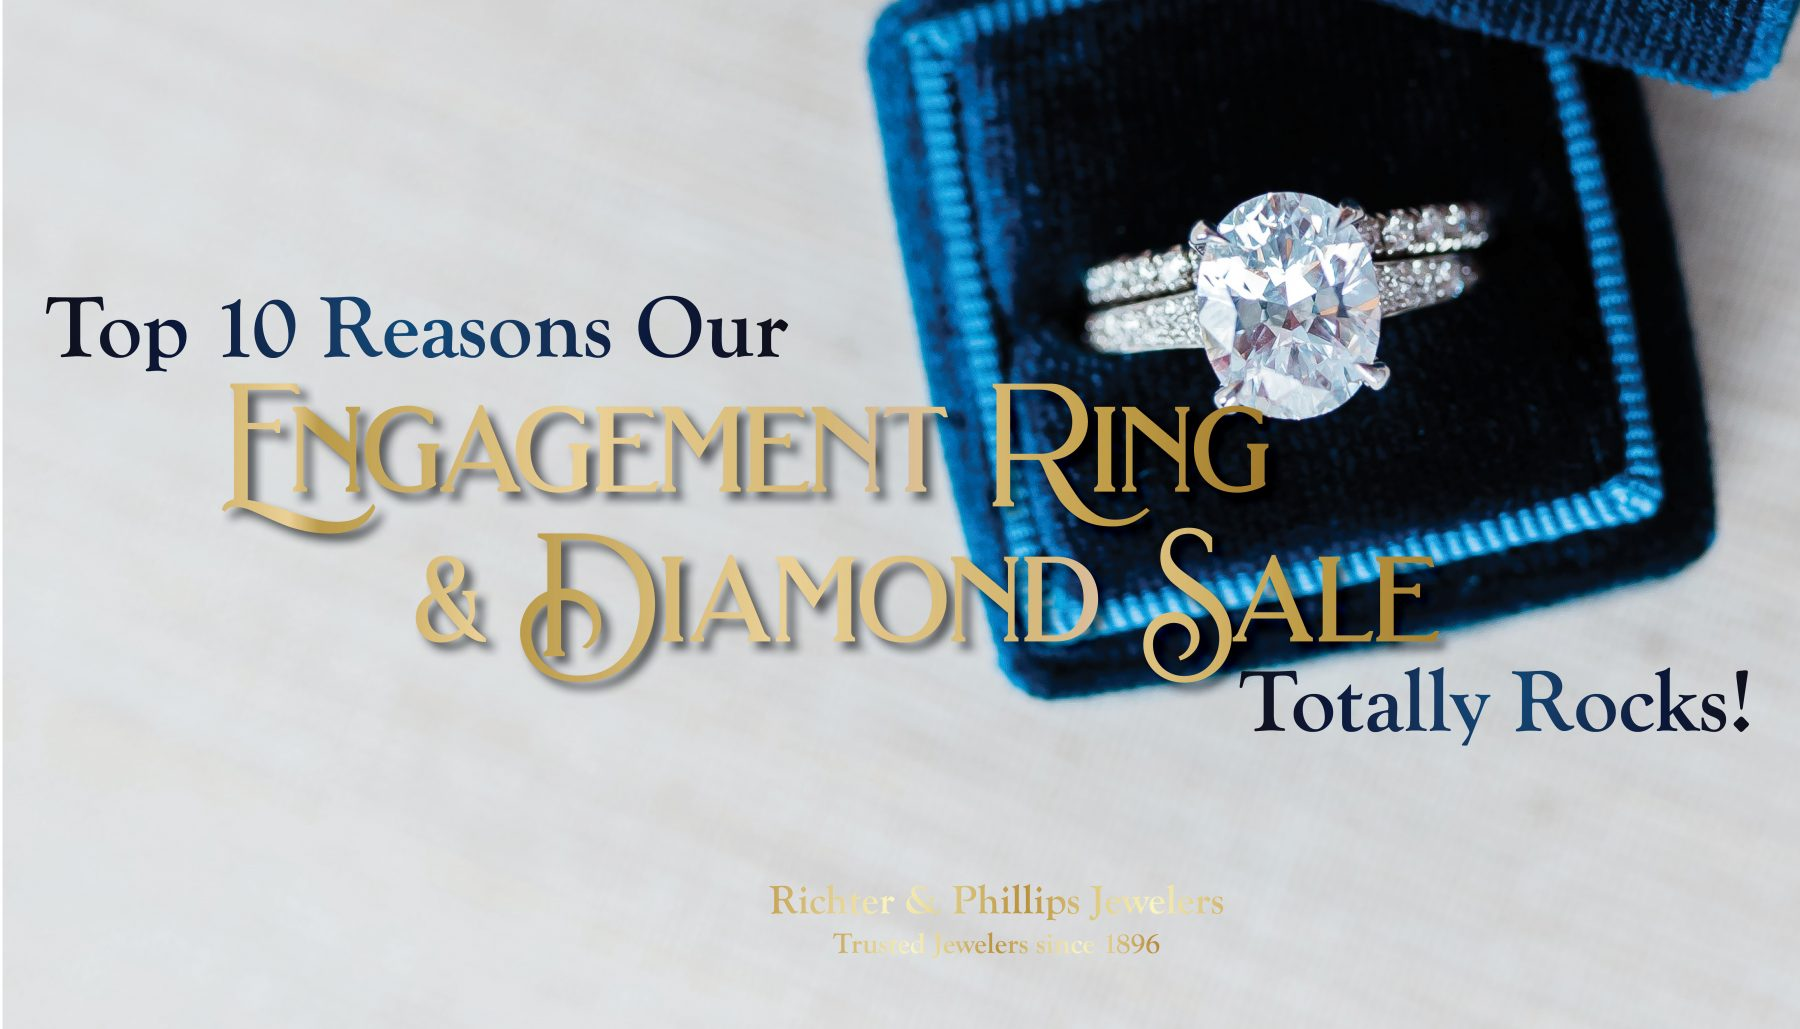 Top 10 Reasons our Engagement Ring & Diamond Sale Rocks